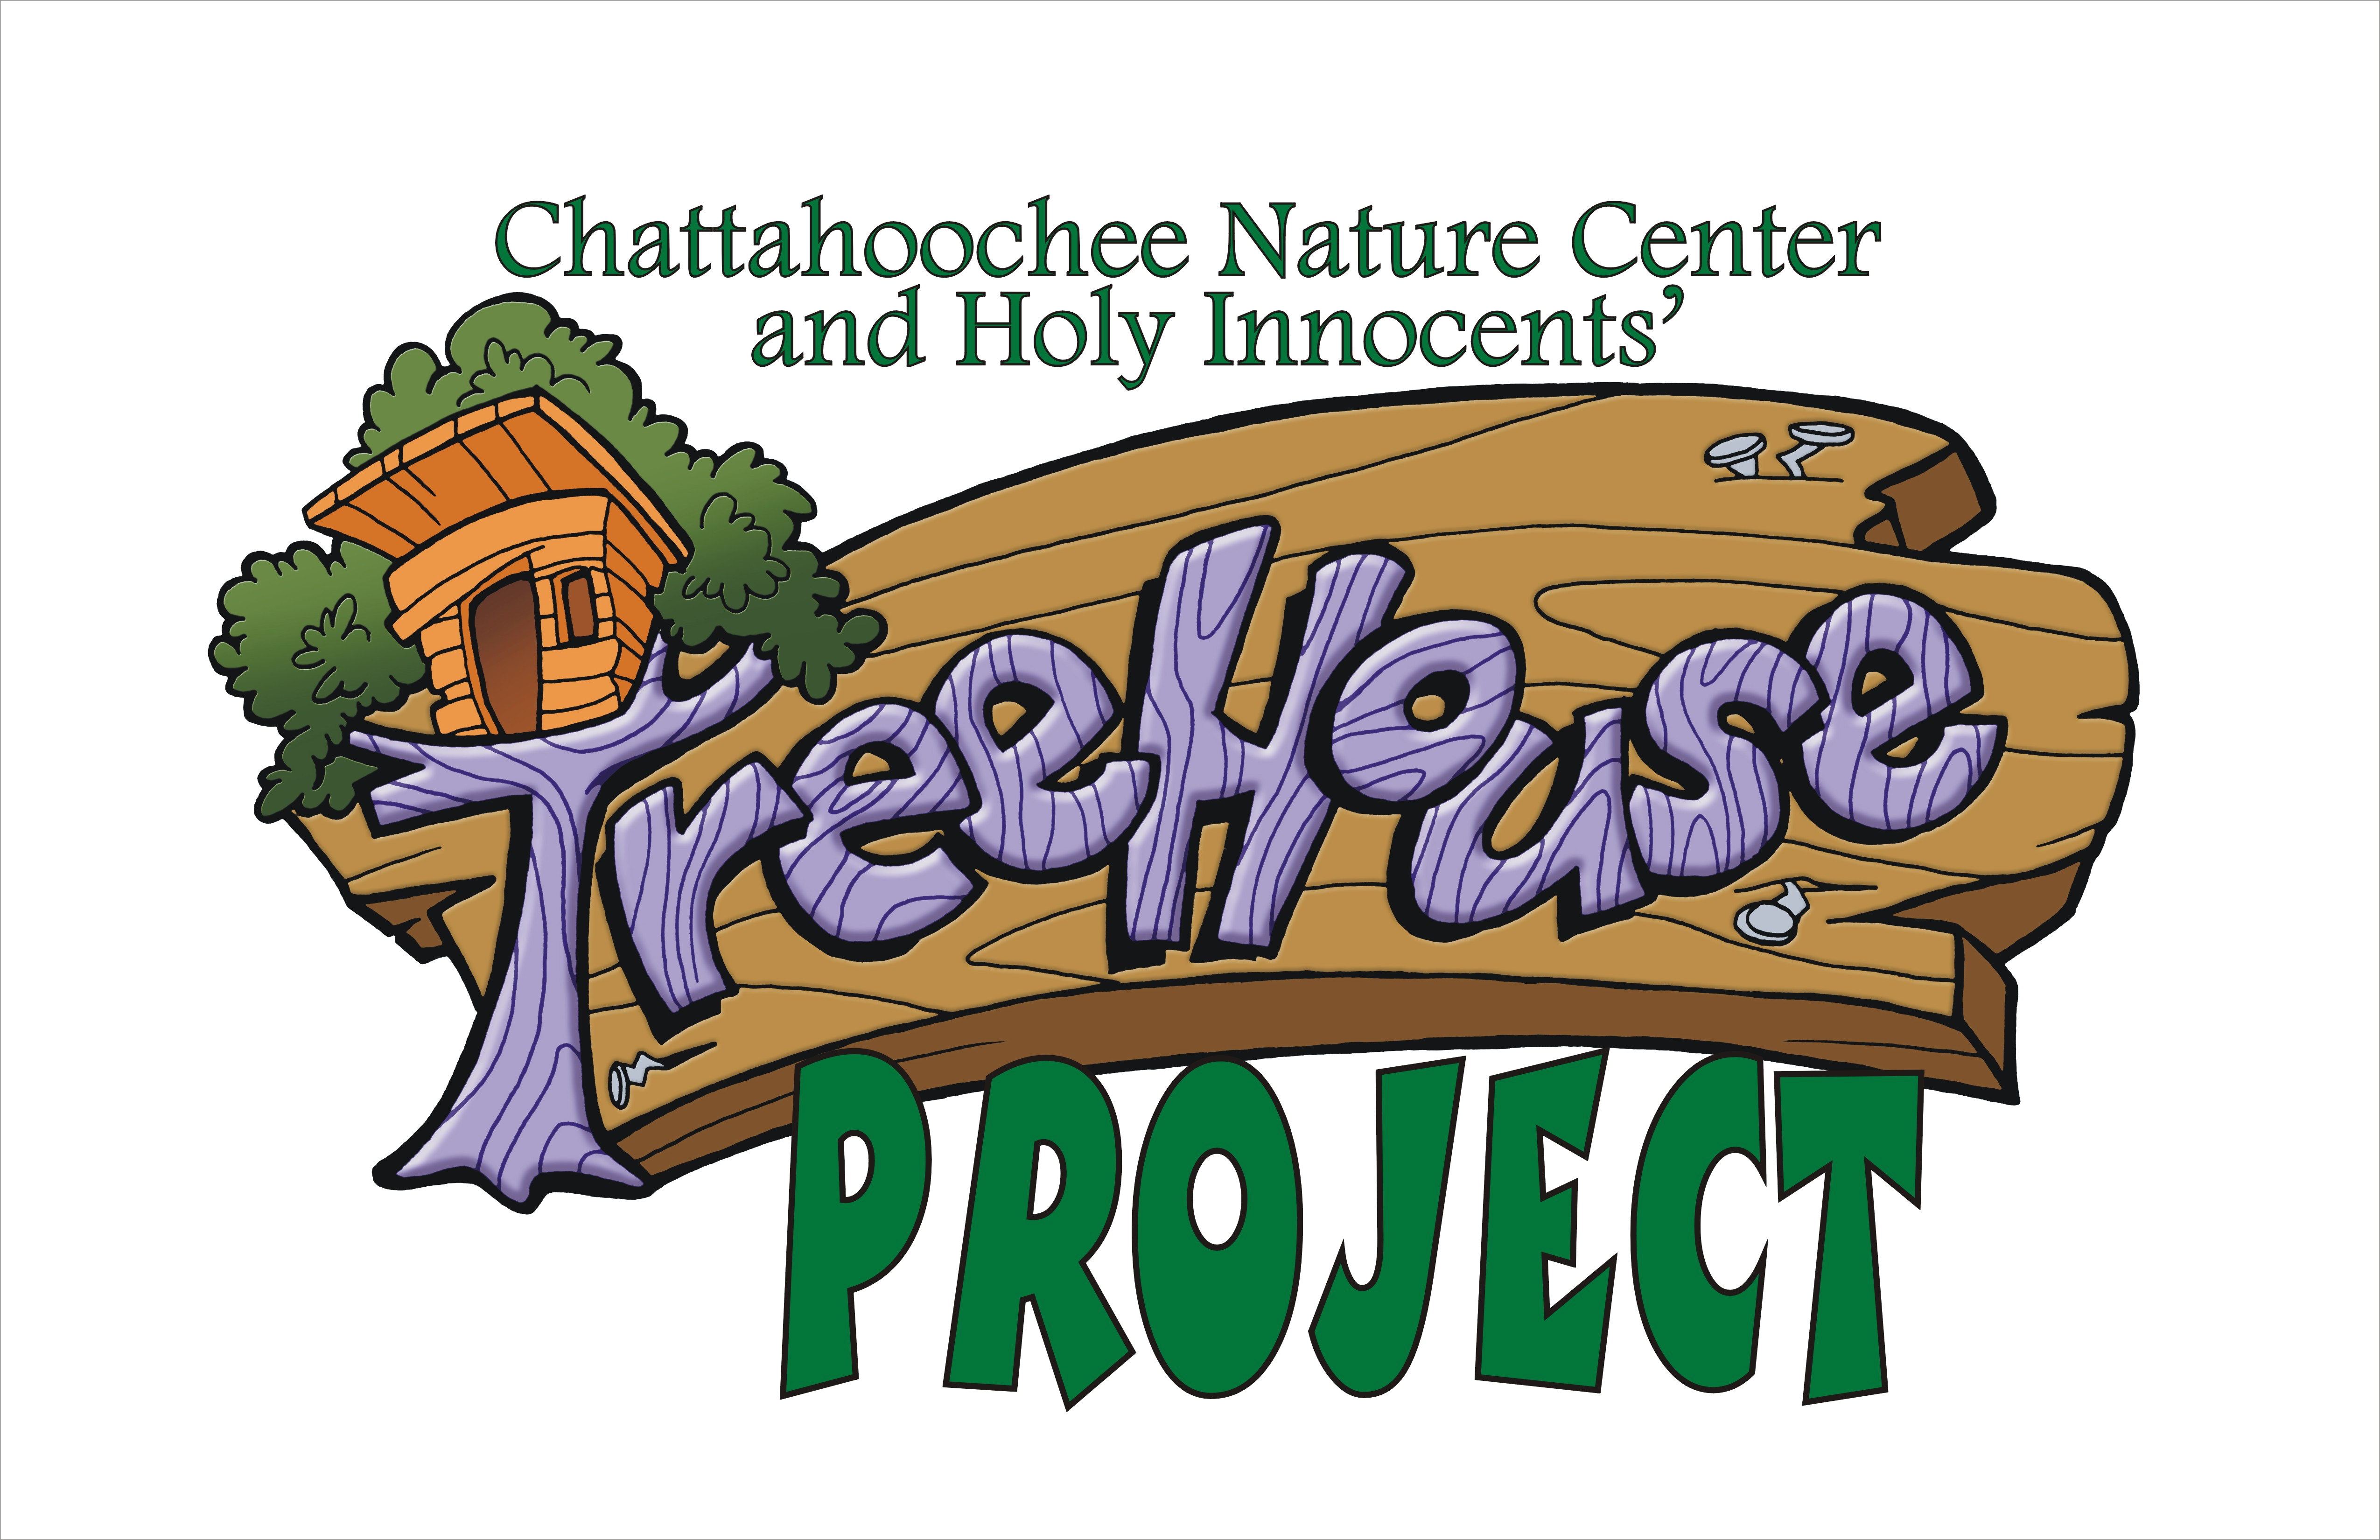 Tree text images music. Flood clipart house florida